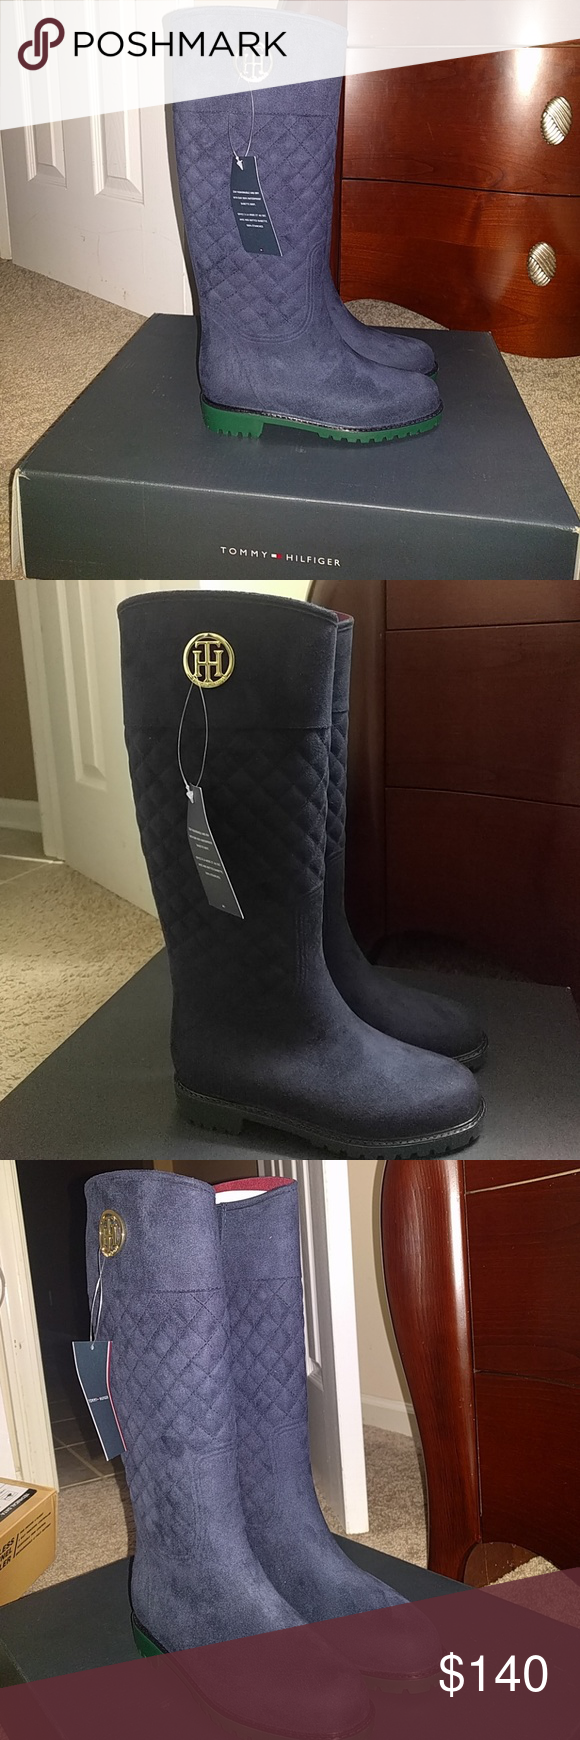 Tommy Hilfiger weather proof Rain Boots size 7 100